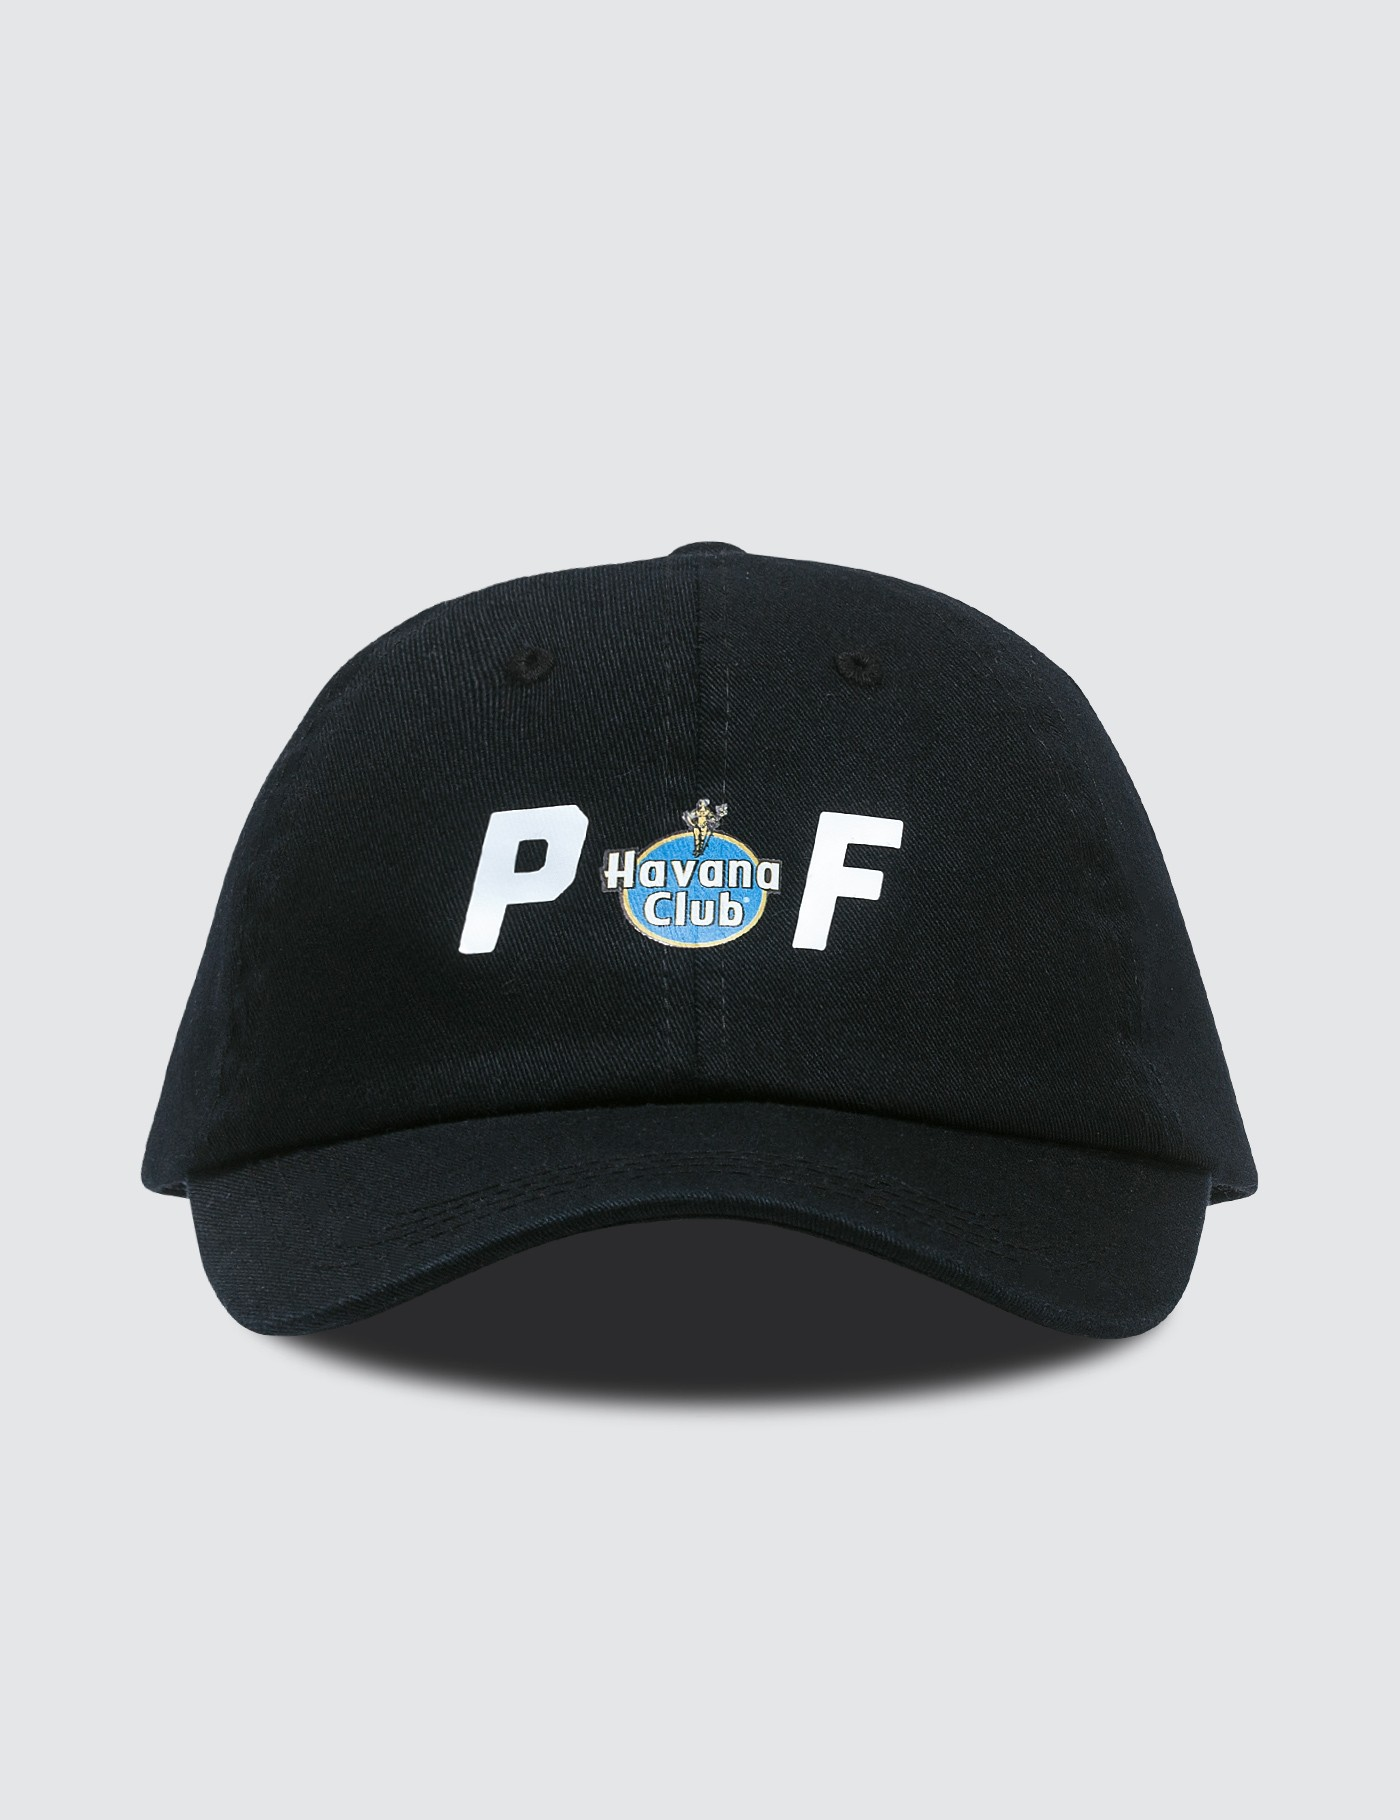 Places + Faces x Havana Club Logo Cap